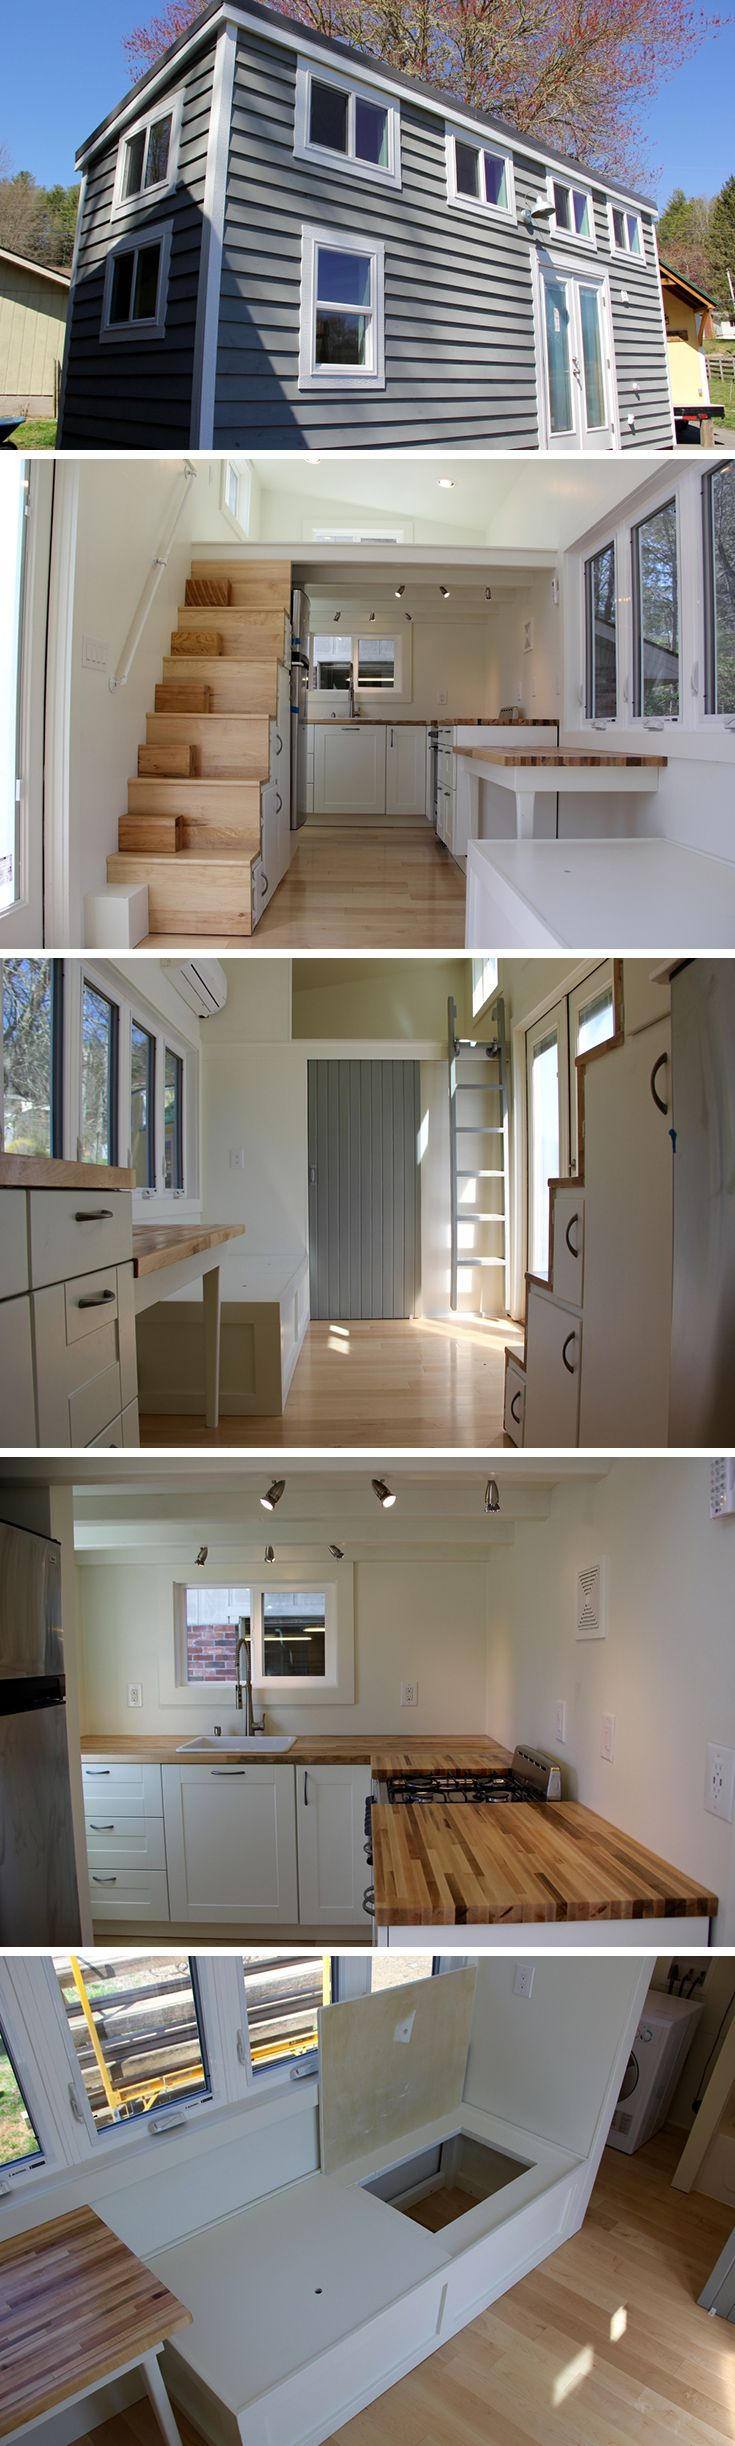 best 25 tiny house layout ideas on pinterest mini houses tiny homes and mini homes. beautiful ideas. Home Design Ideas